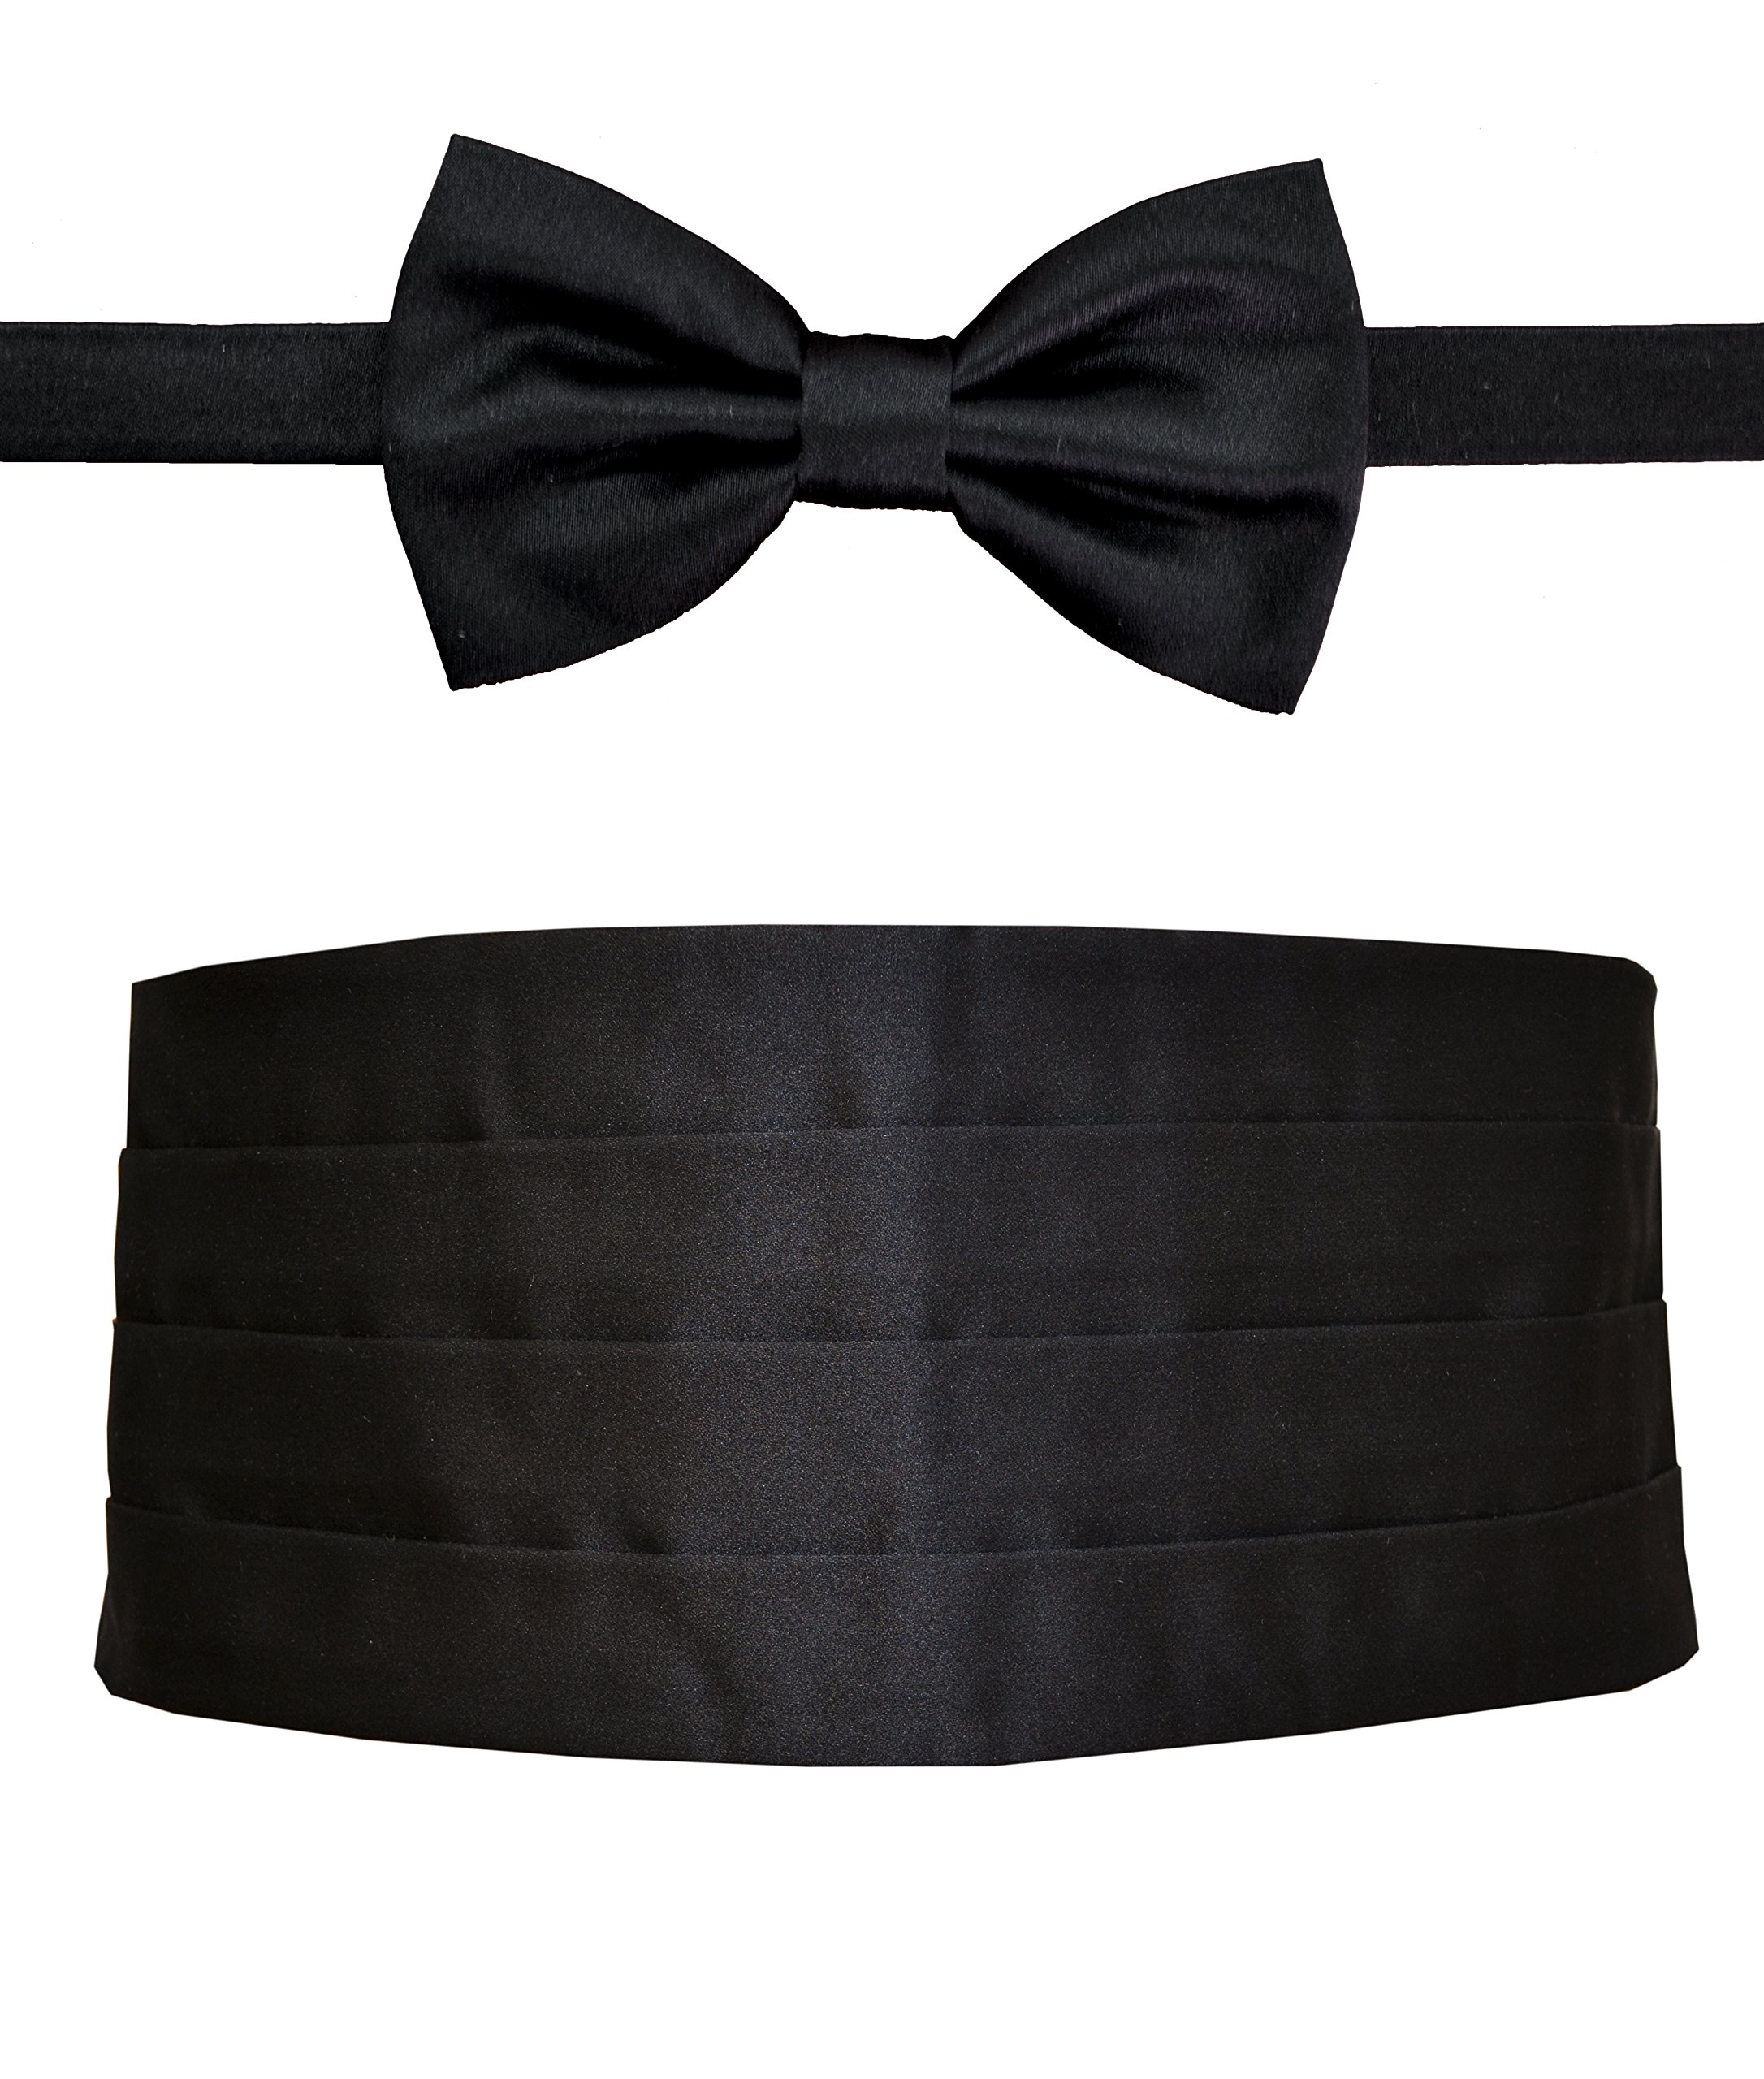 Remo Sartori Made in Italy Men's Black Silk Cummerbund Tuxedo Belt & BowTie Set, Silk (Medium: Adjustable from 29'' to 35'')